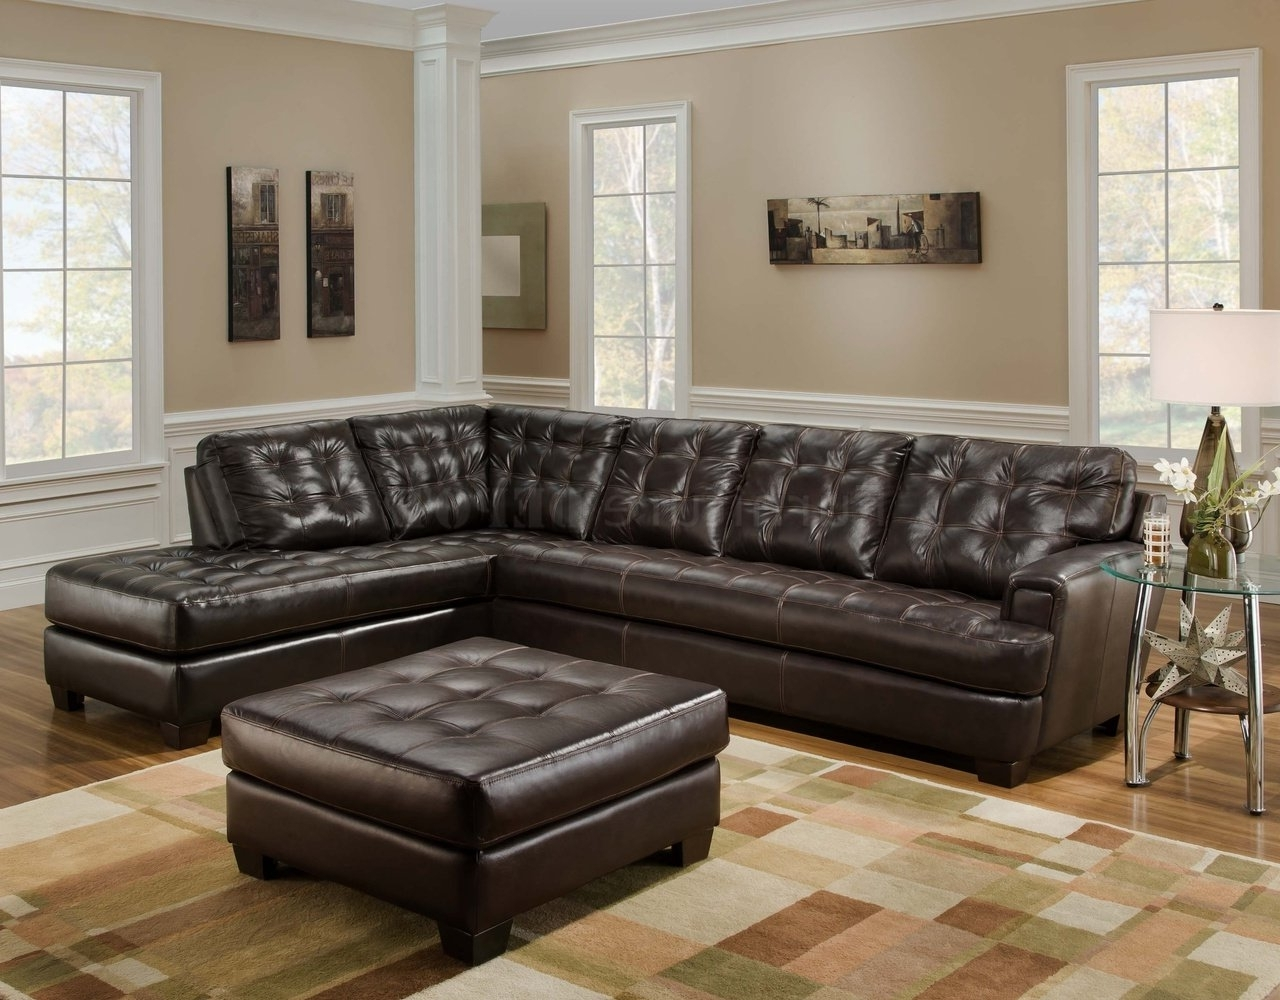 Leather Sectionals With Chaise And Ottoman Within Current Dark Brown Leather Tufted Sectional Chaise Lounge Sofa With (View 10 of 20)